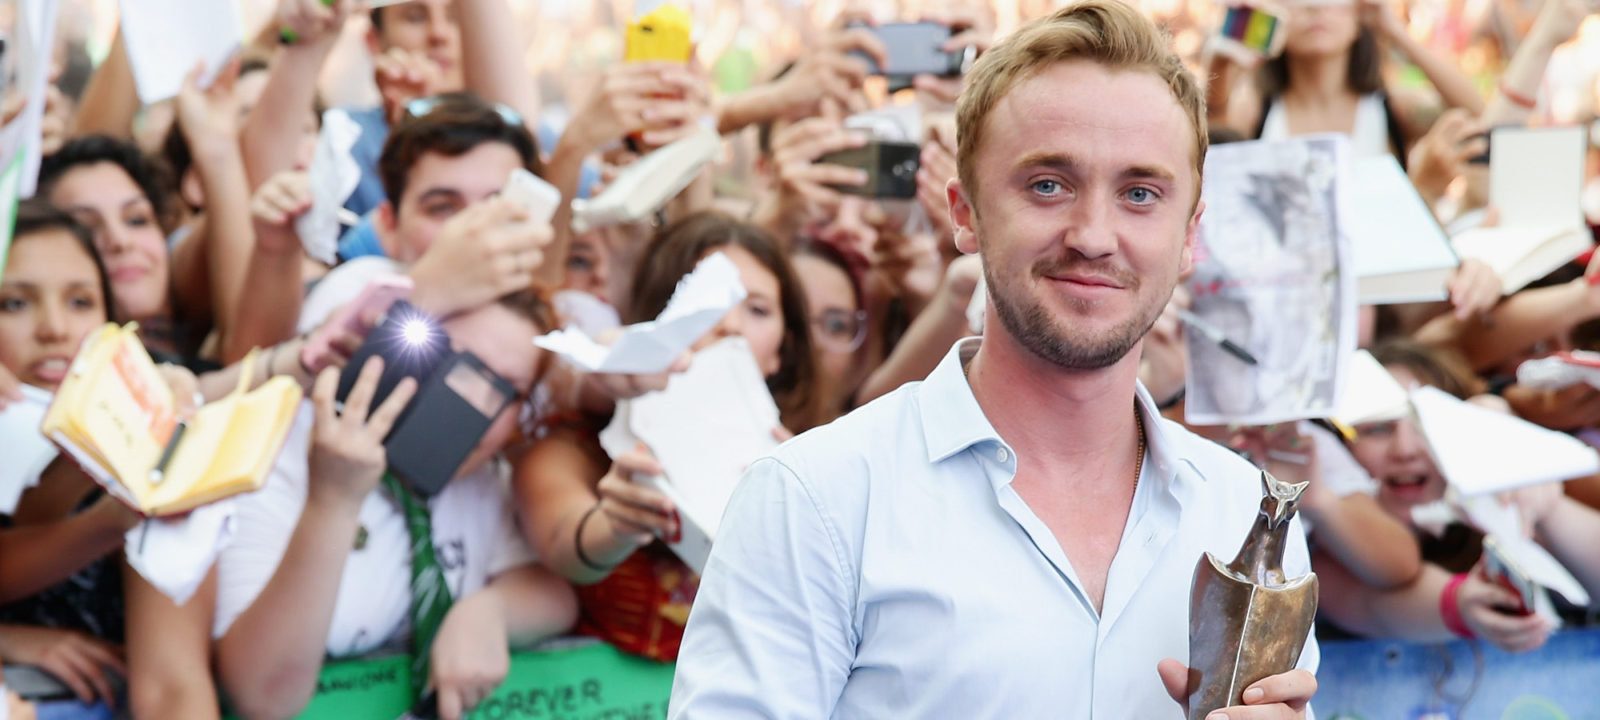 Tom Felton receives the Giffoni Experience Award during Giffoni Film Festival 2015 on July 21, 2015 in Giffoni Valle Piana, Italy.